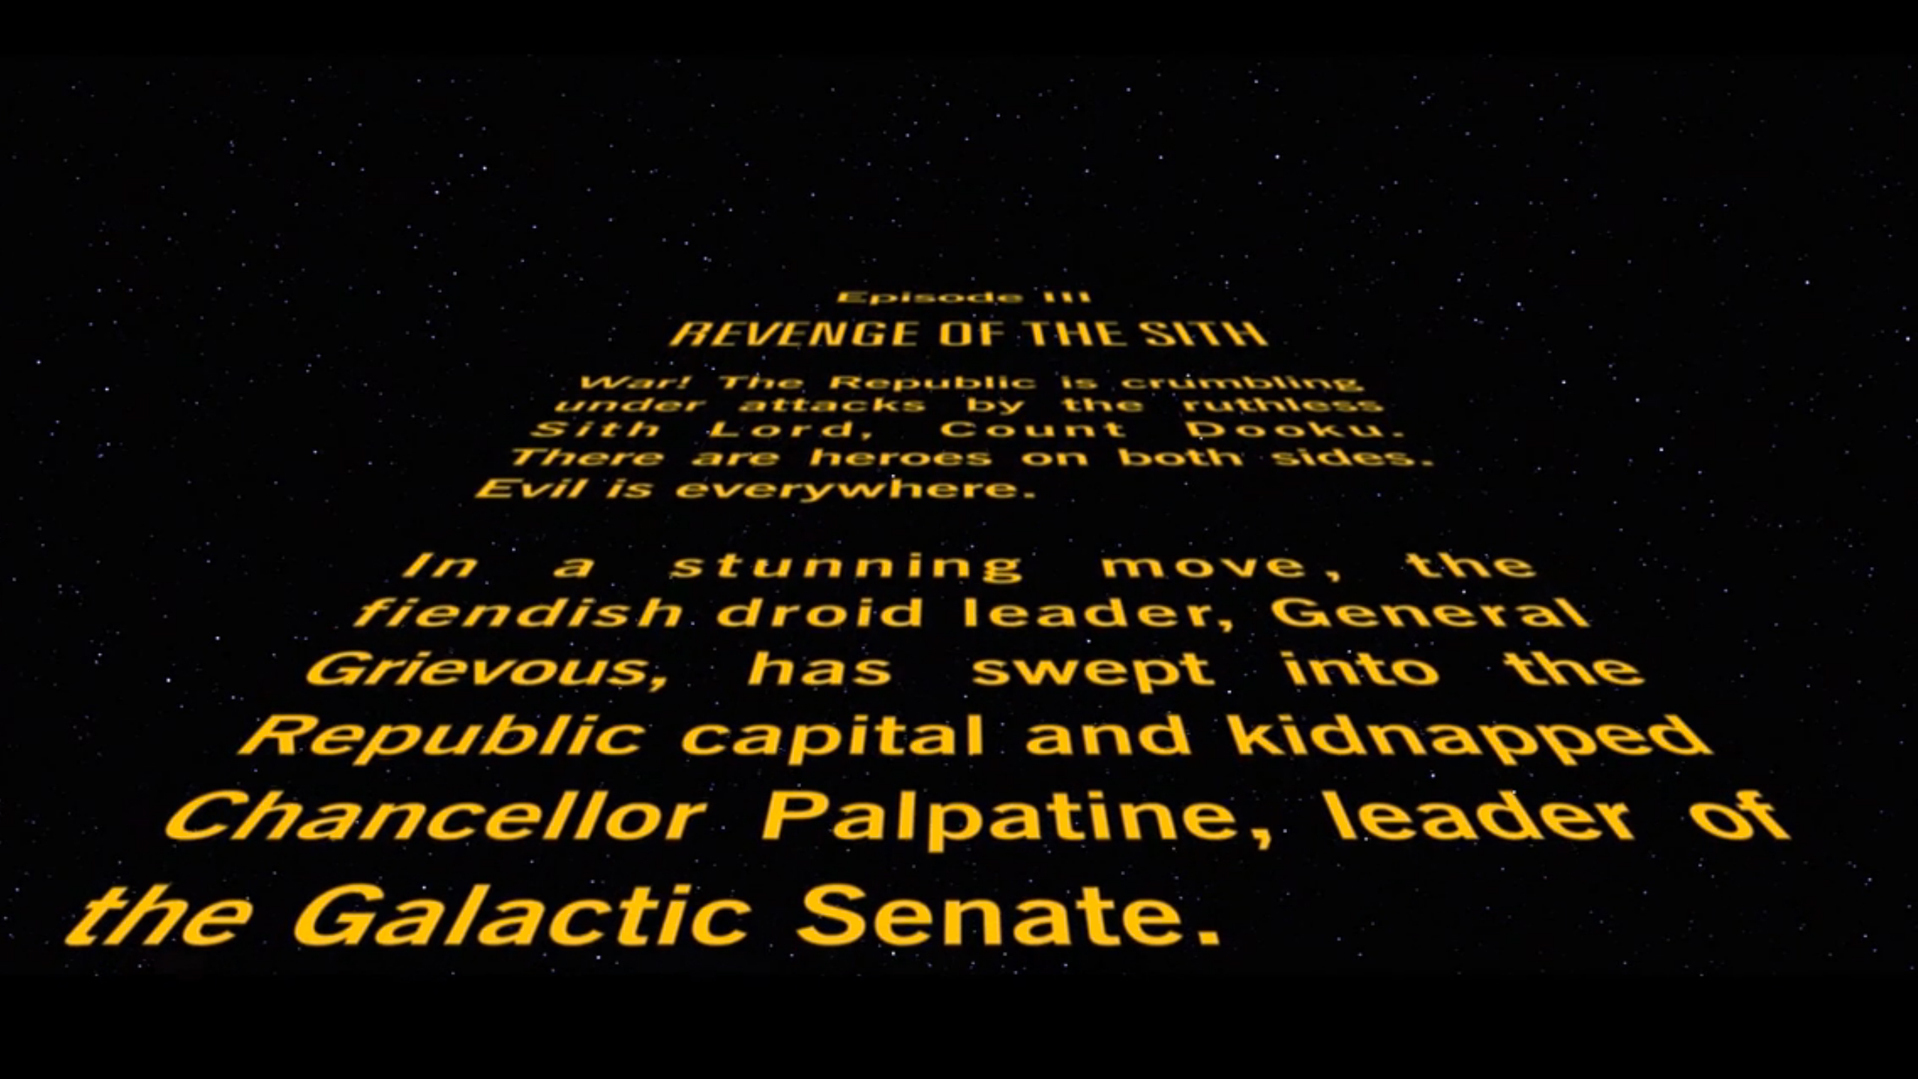 star wars opening crawl - photo #19